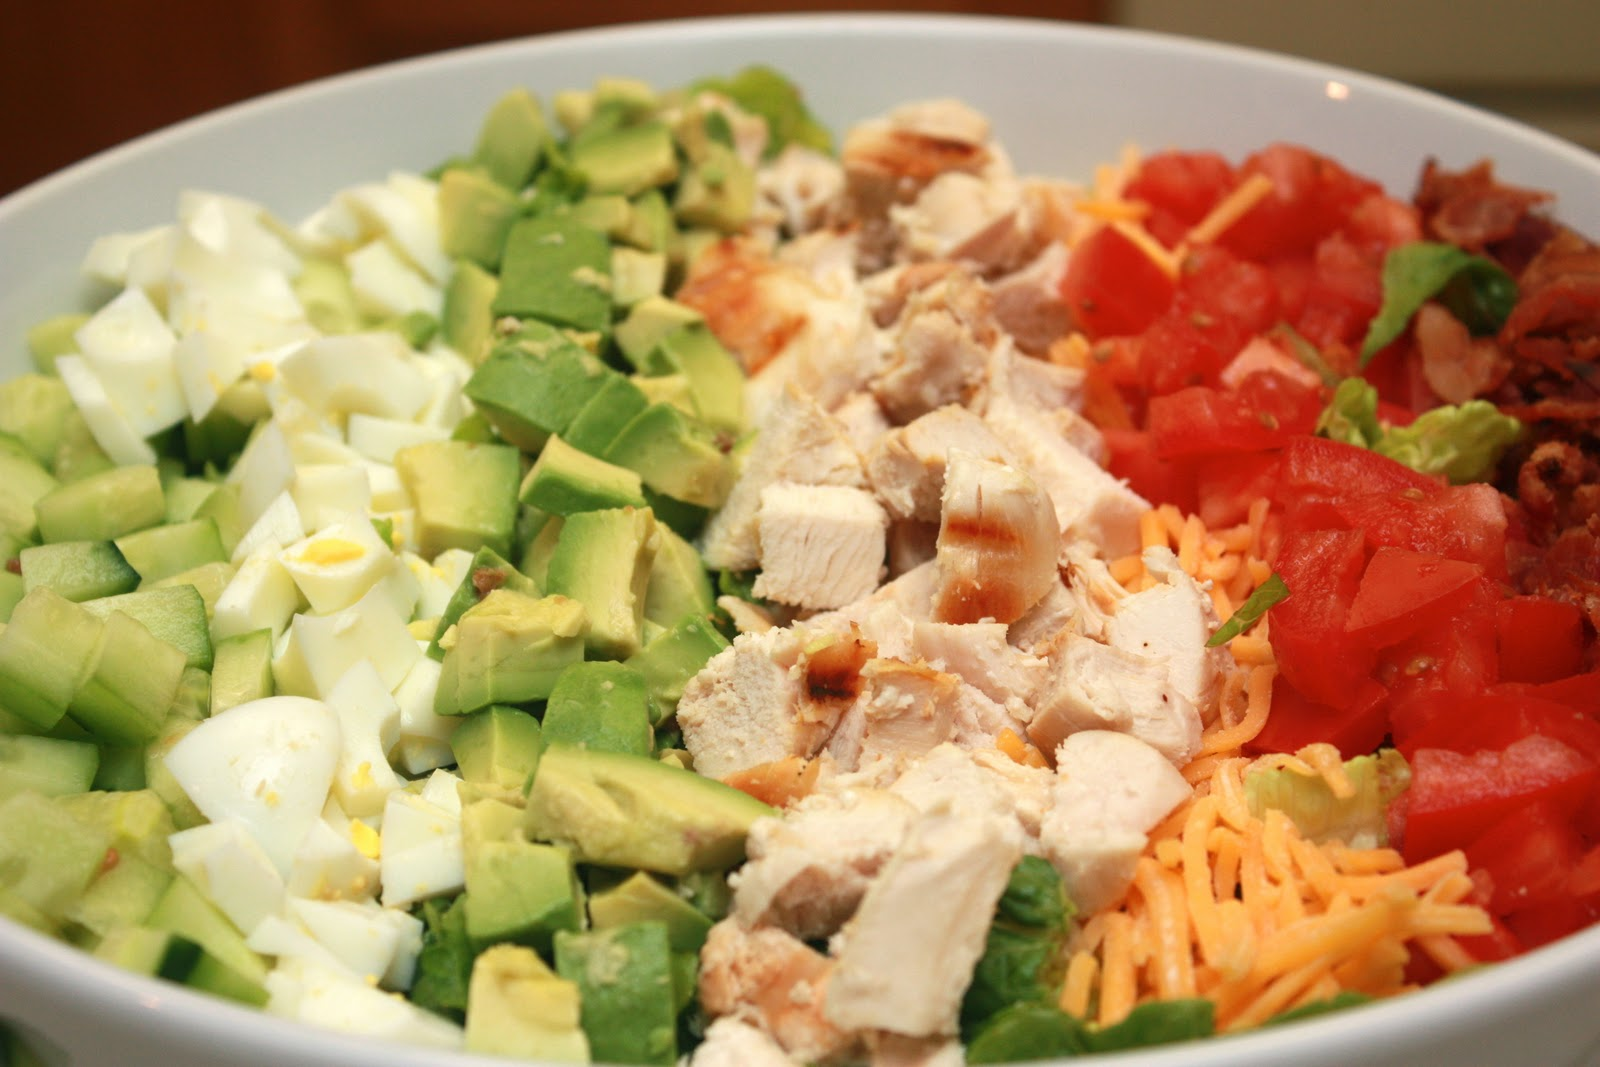 Meet the Sullivans: The EatingWell Cobb Salad